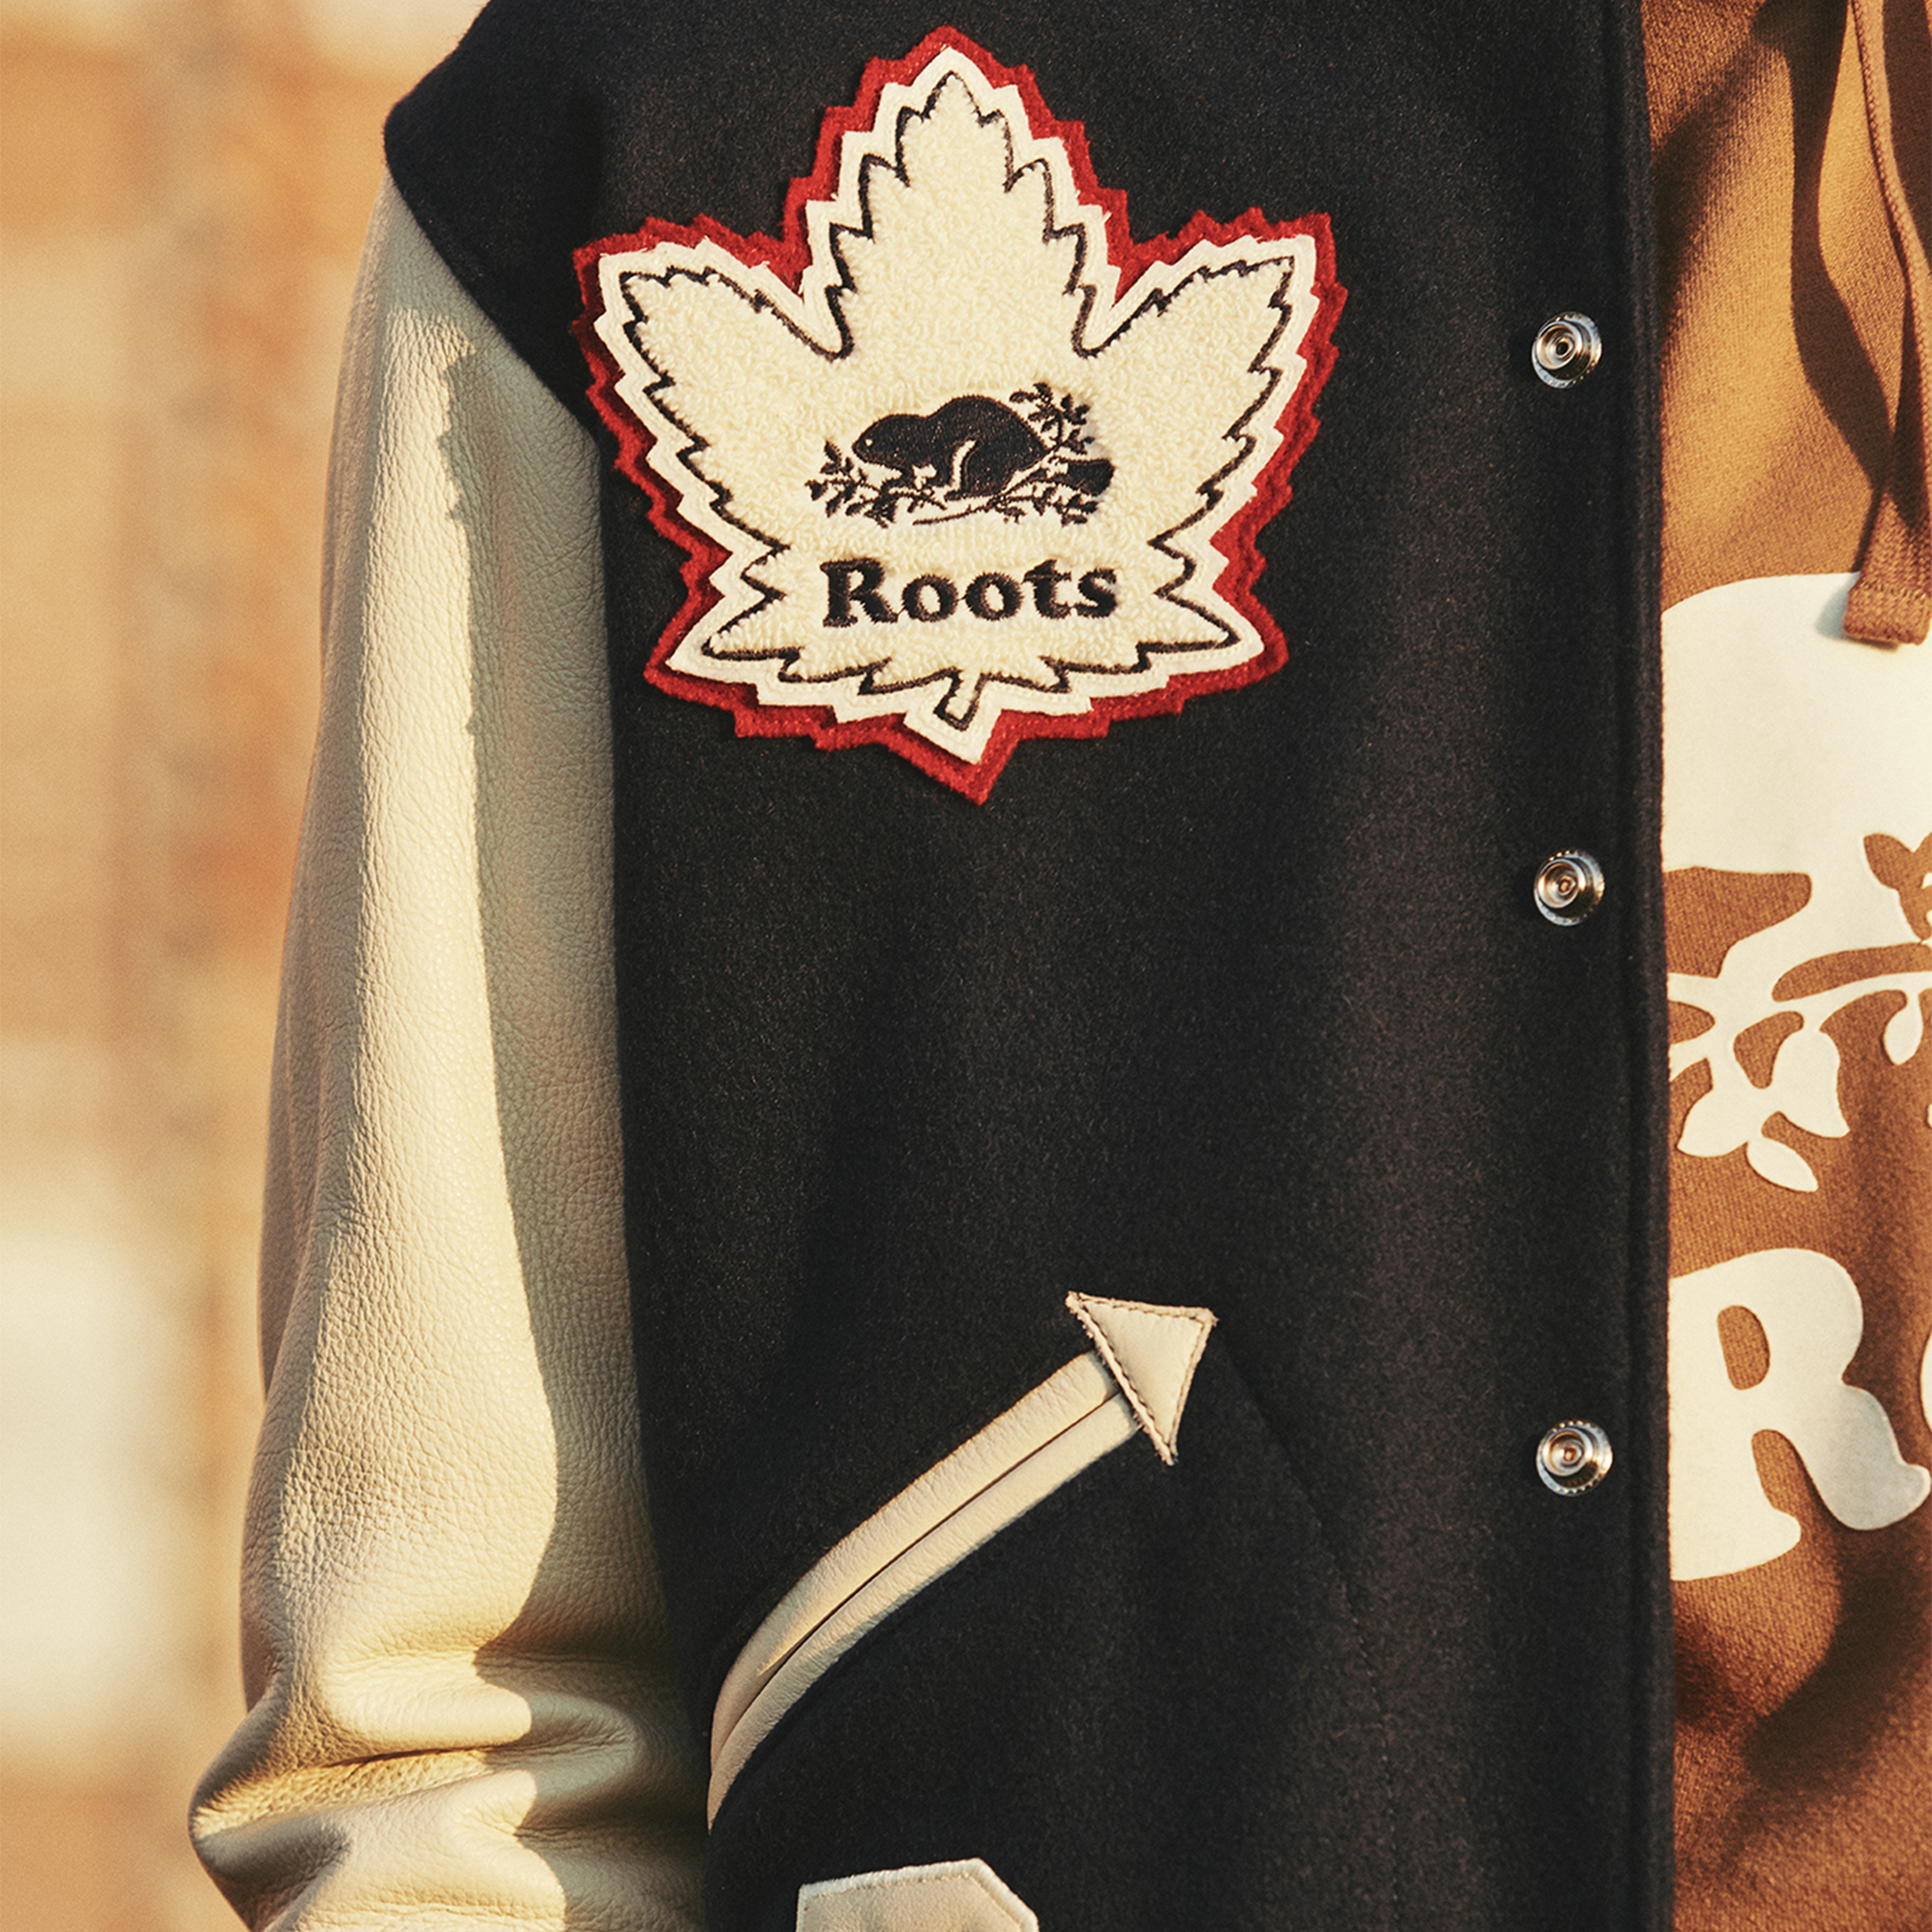 Roots-Men Award Jackets-Shop The Look: The Roots Awards Jacket-Y